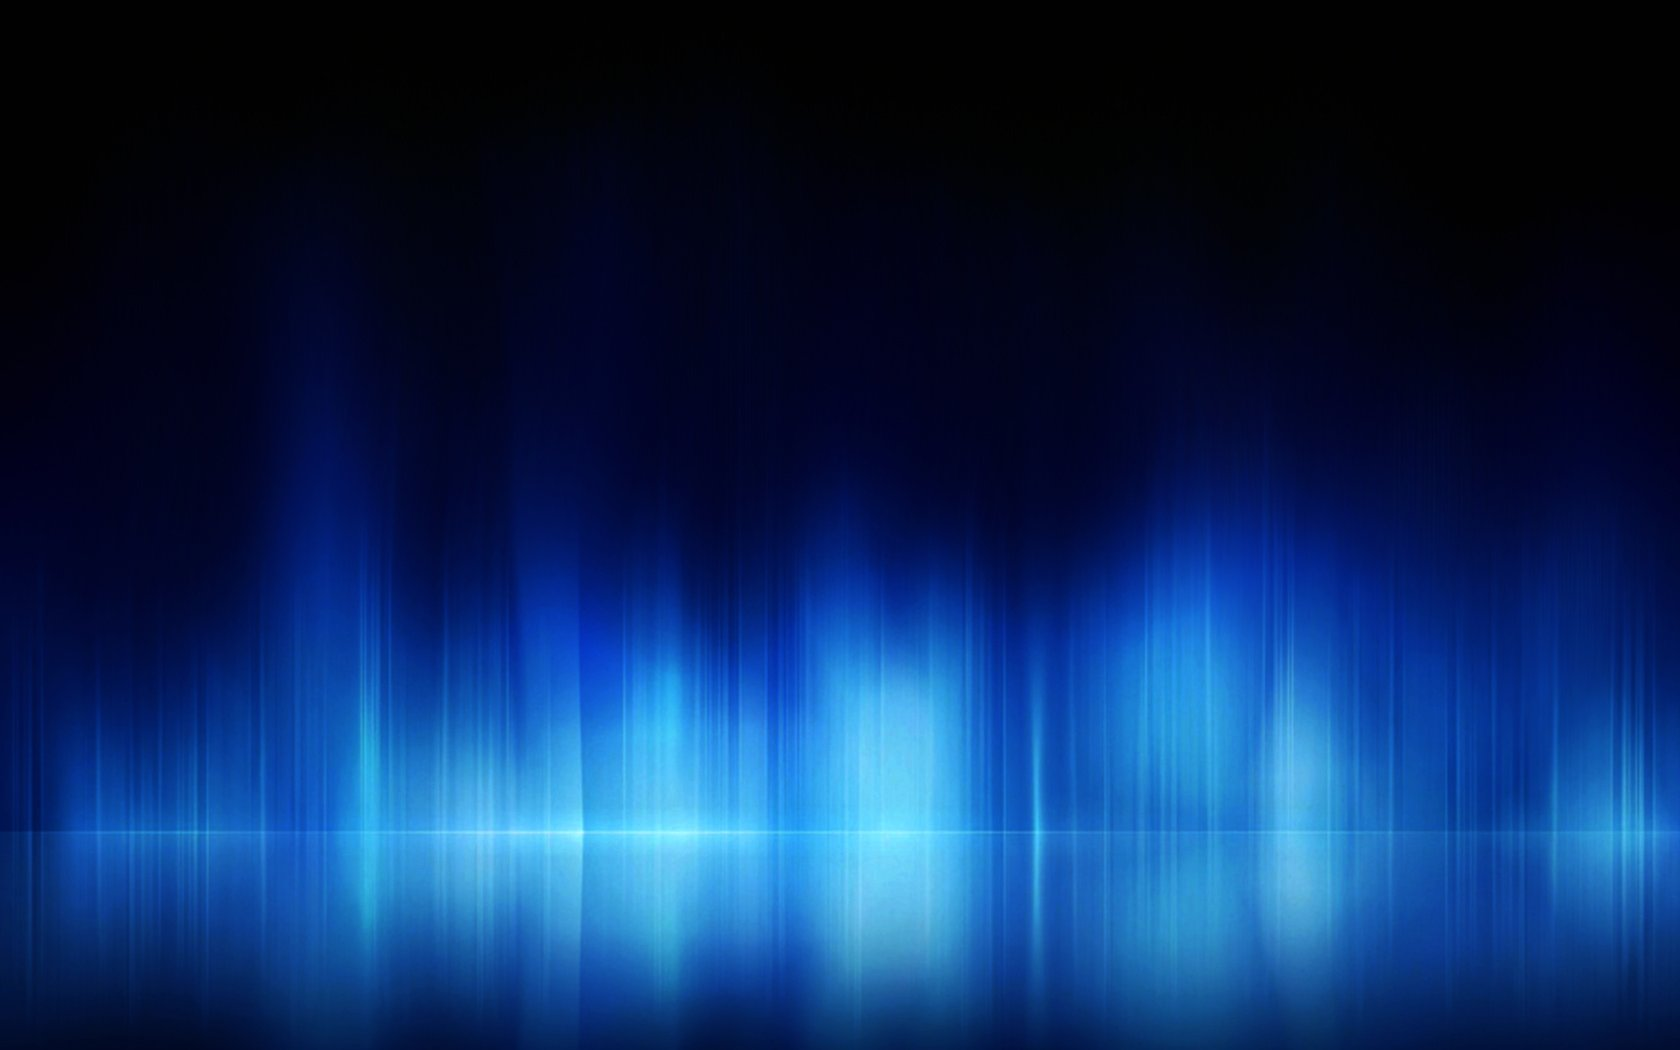 Blue Computer Wallpapers Desktop Backgrounds 1680x1050 ID48076 1680x1050